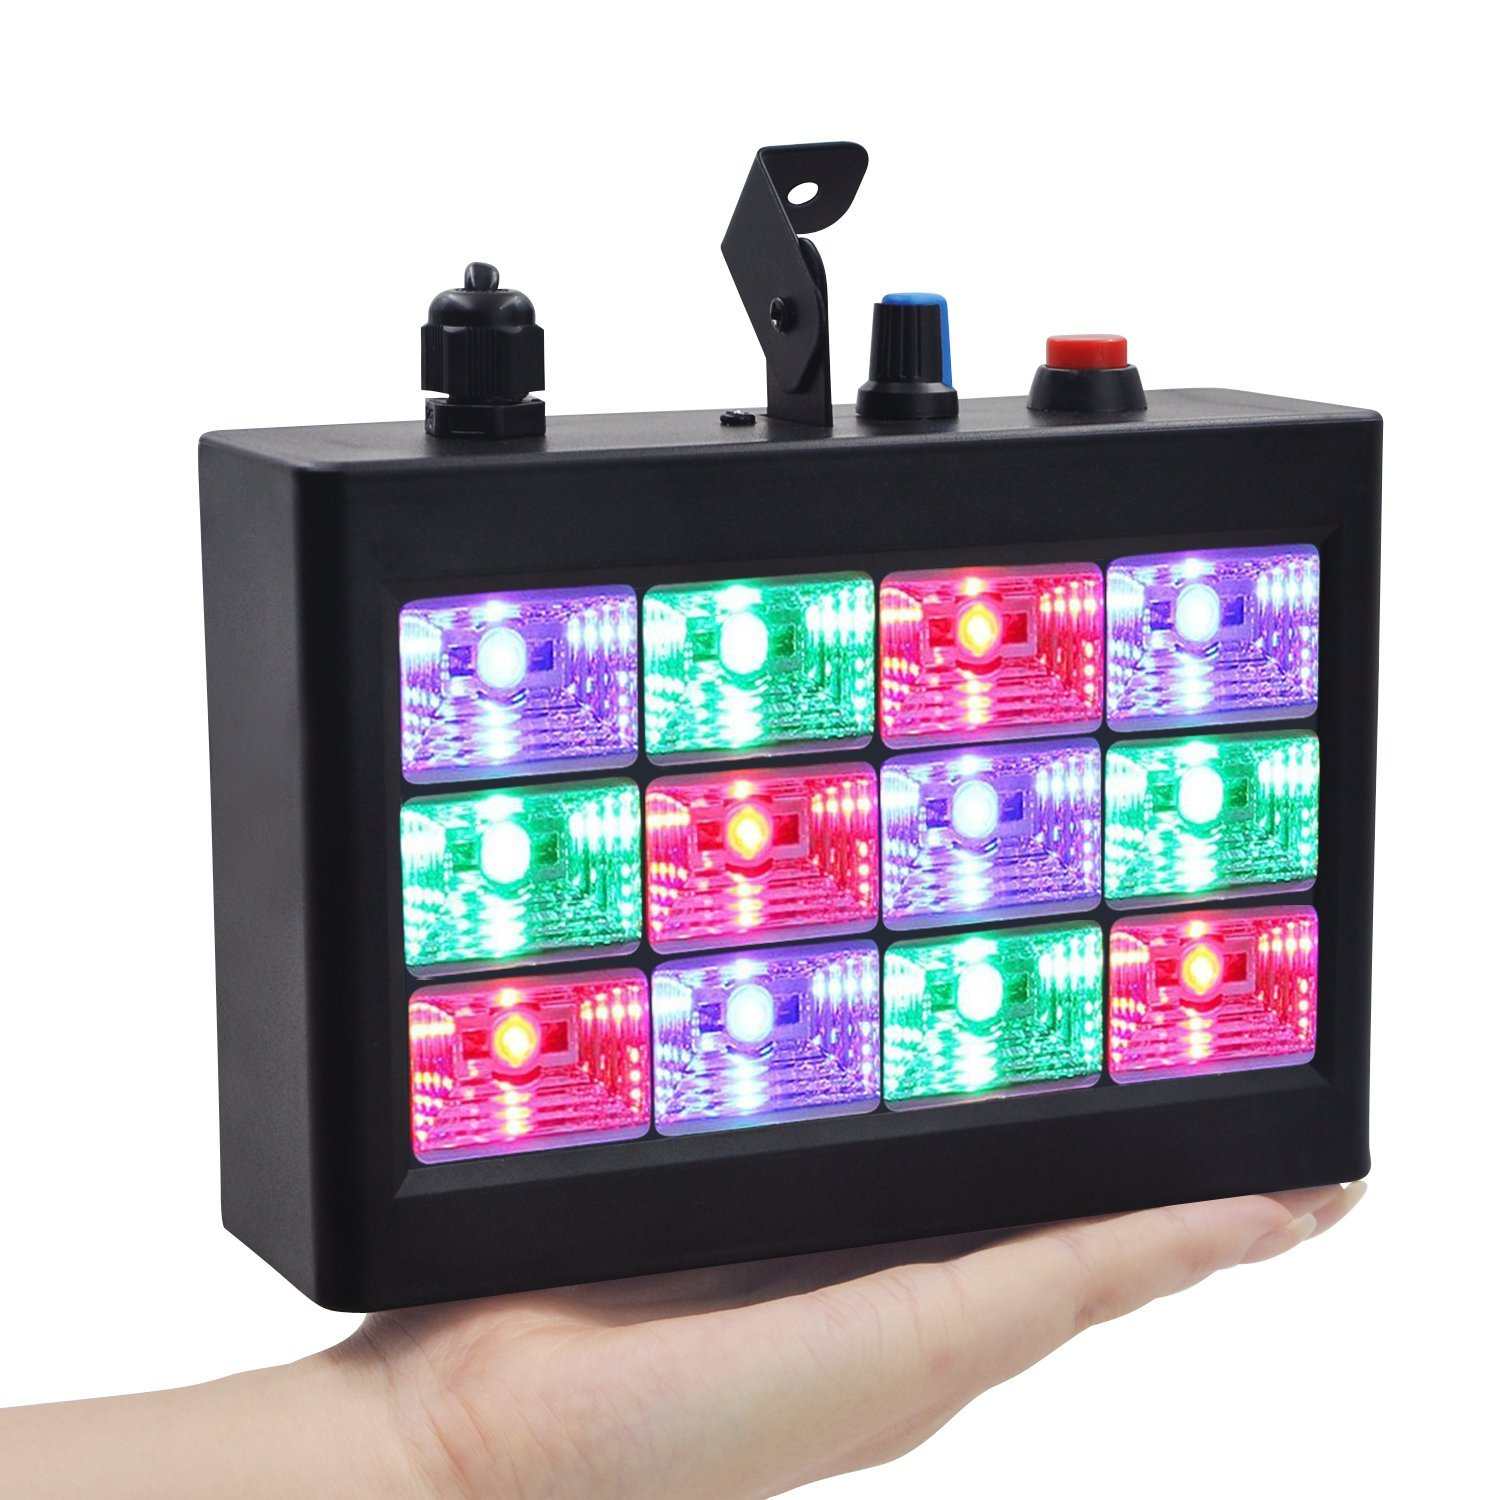 Dj rgb led dance studio light YX-043a